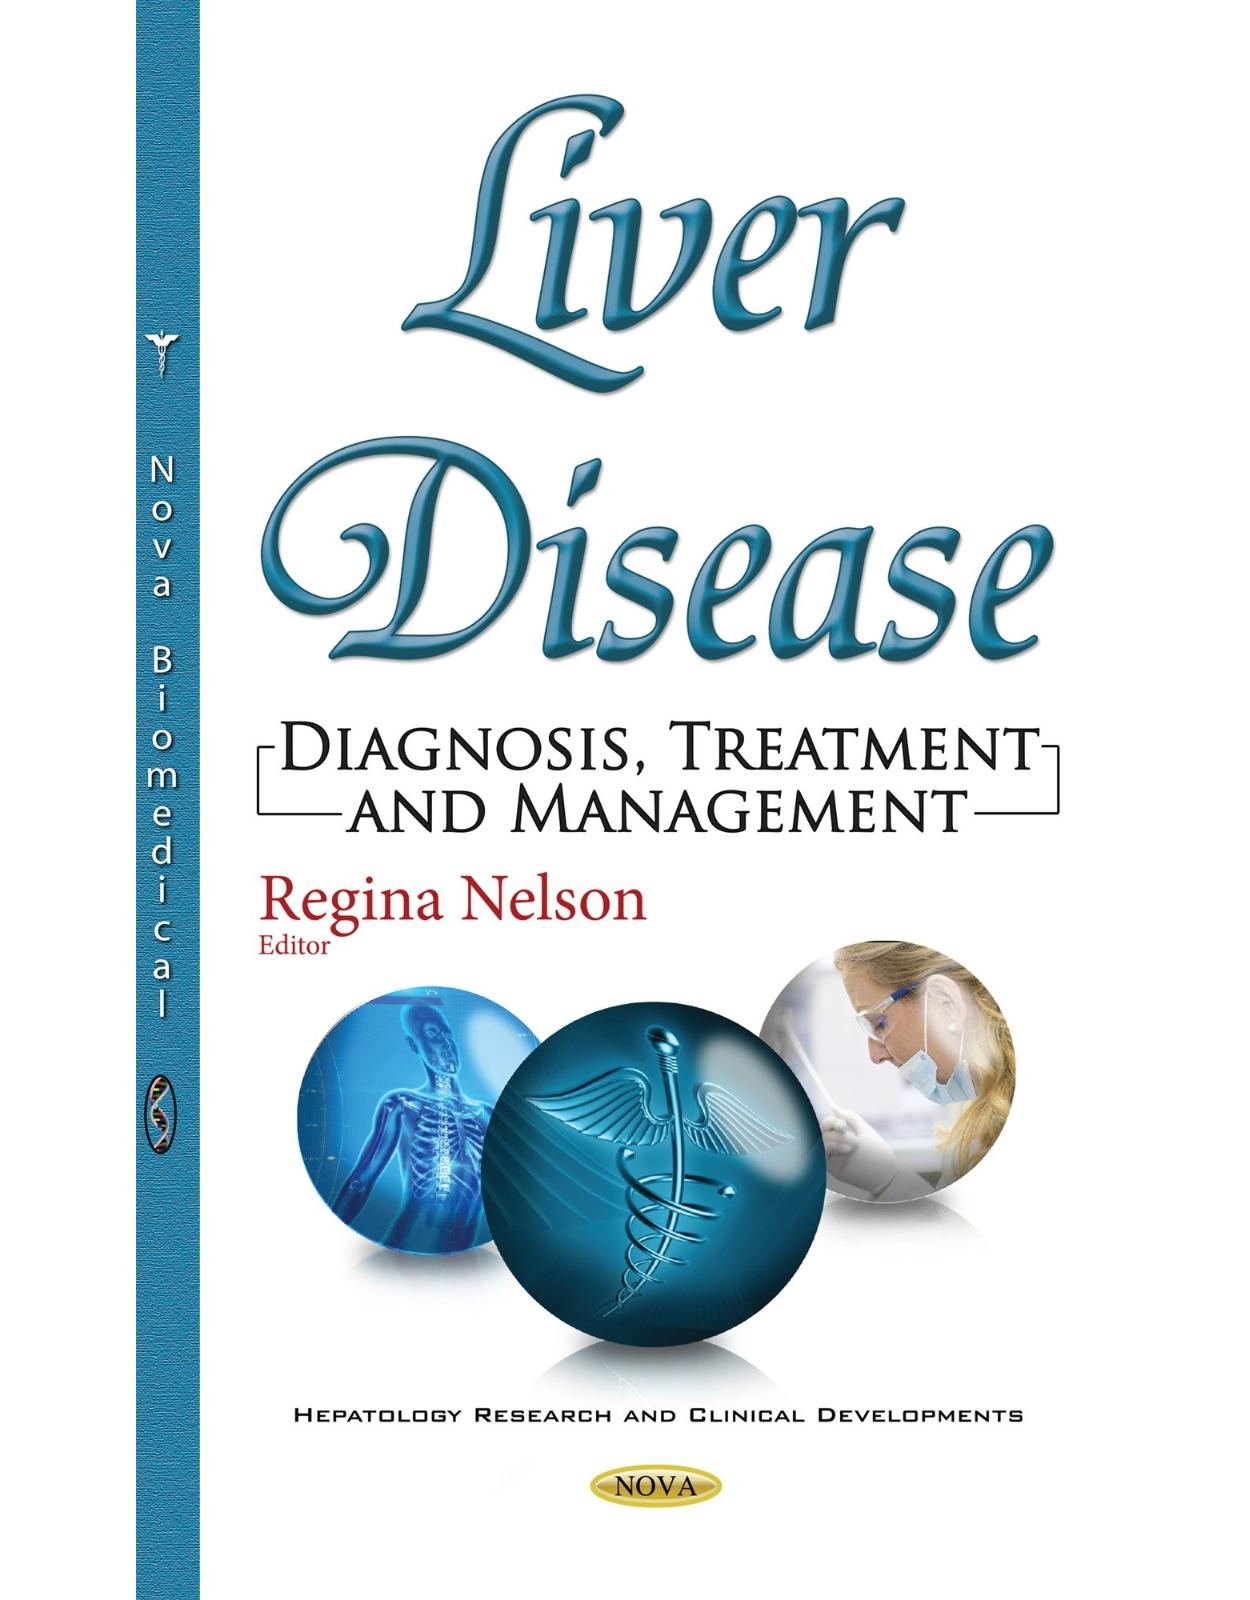 Liver Disease: Diagnosis, Treatment & Management